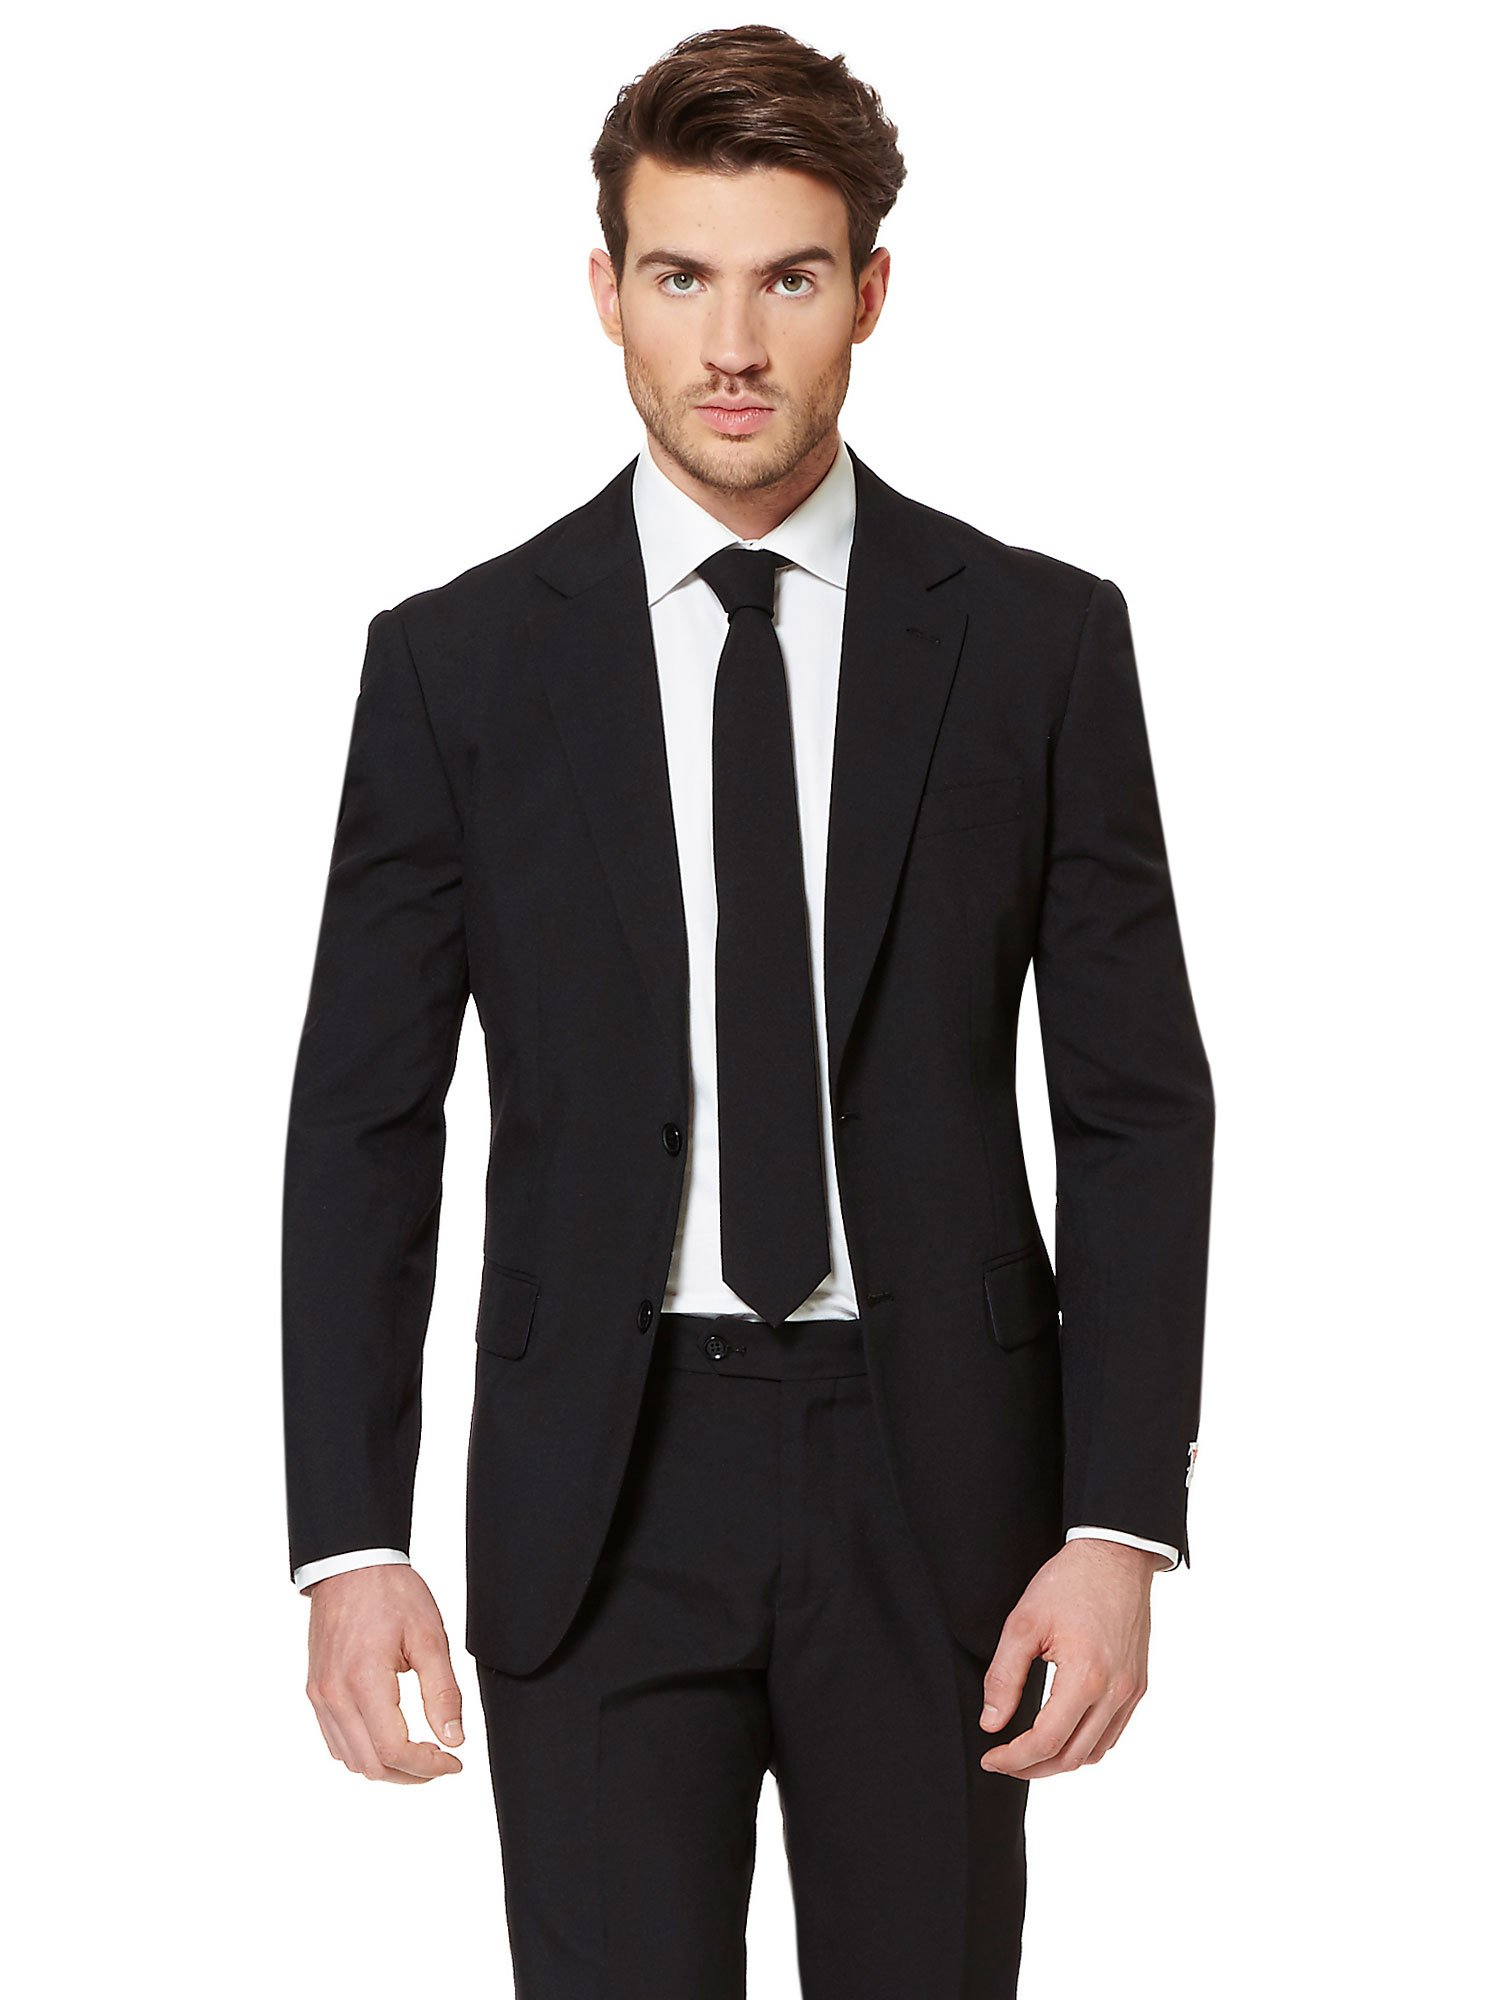 Opposuits Black Knight Solid Black Suit For Men Coming With Pants, Jacket and Tie, Black Knight, US38